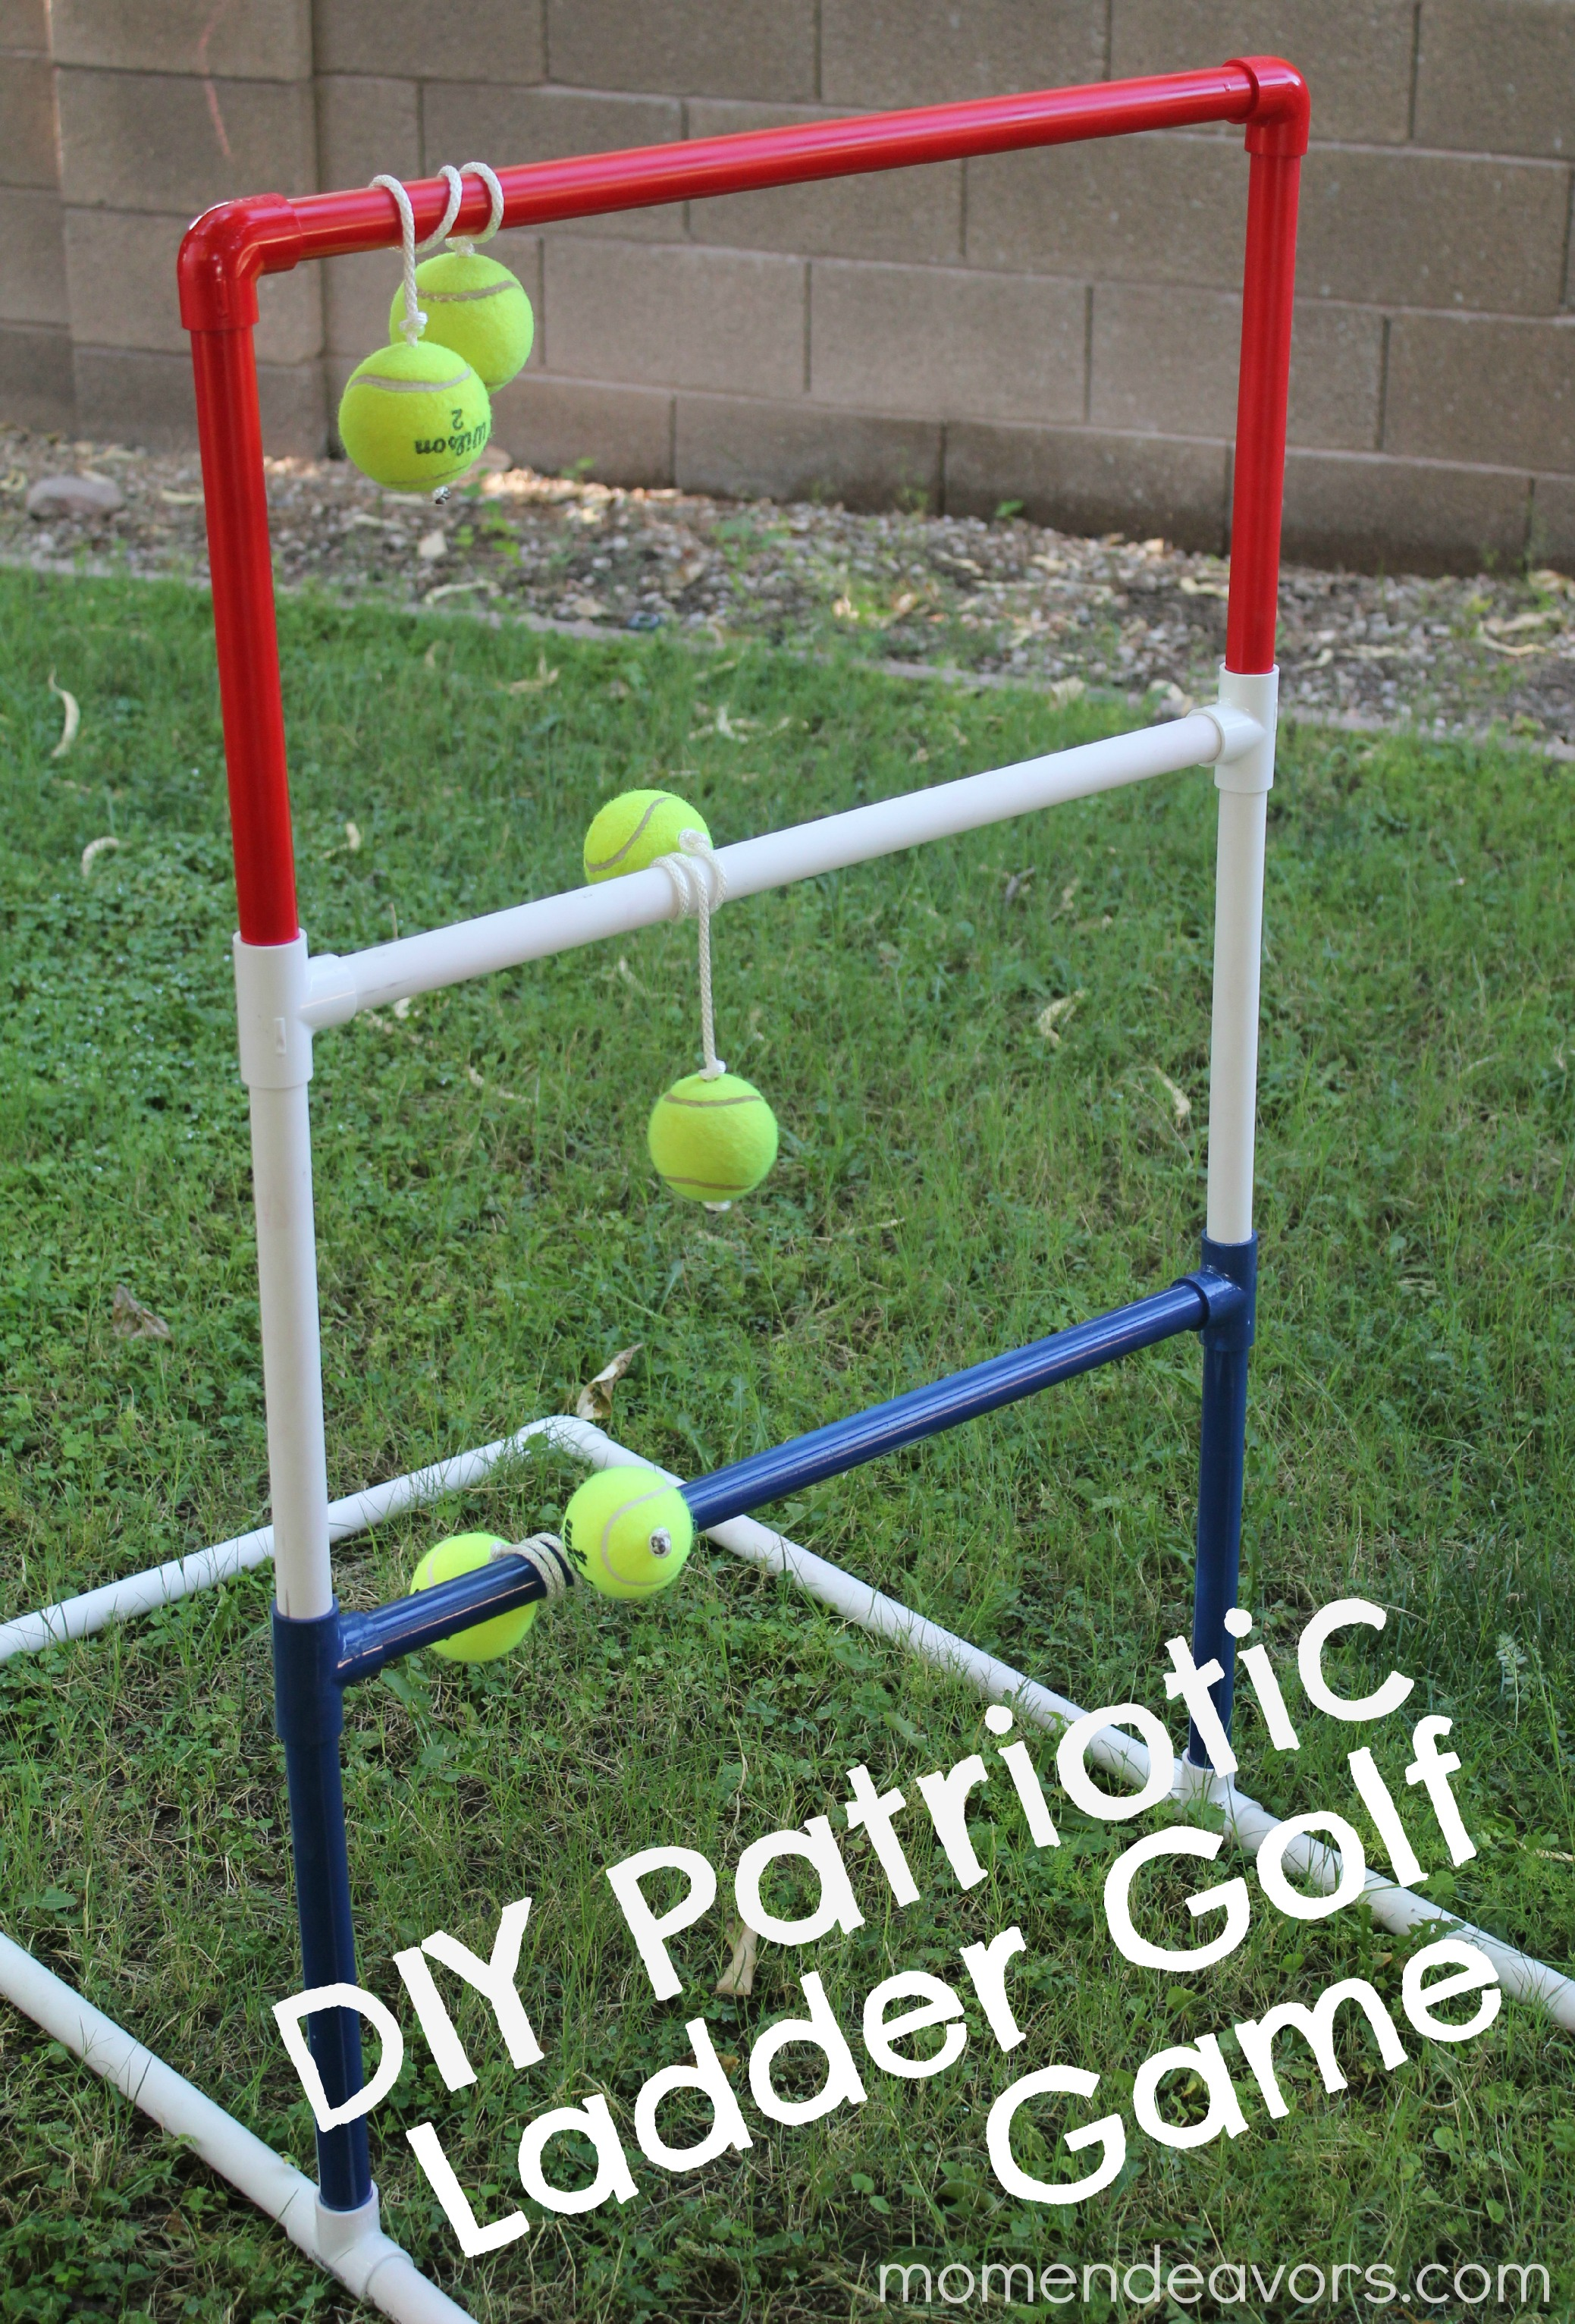 DIY-Patriotic-Ladder-Golf-Game1